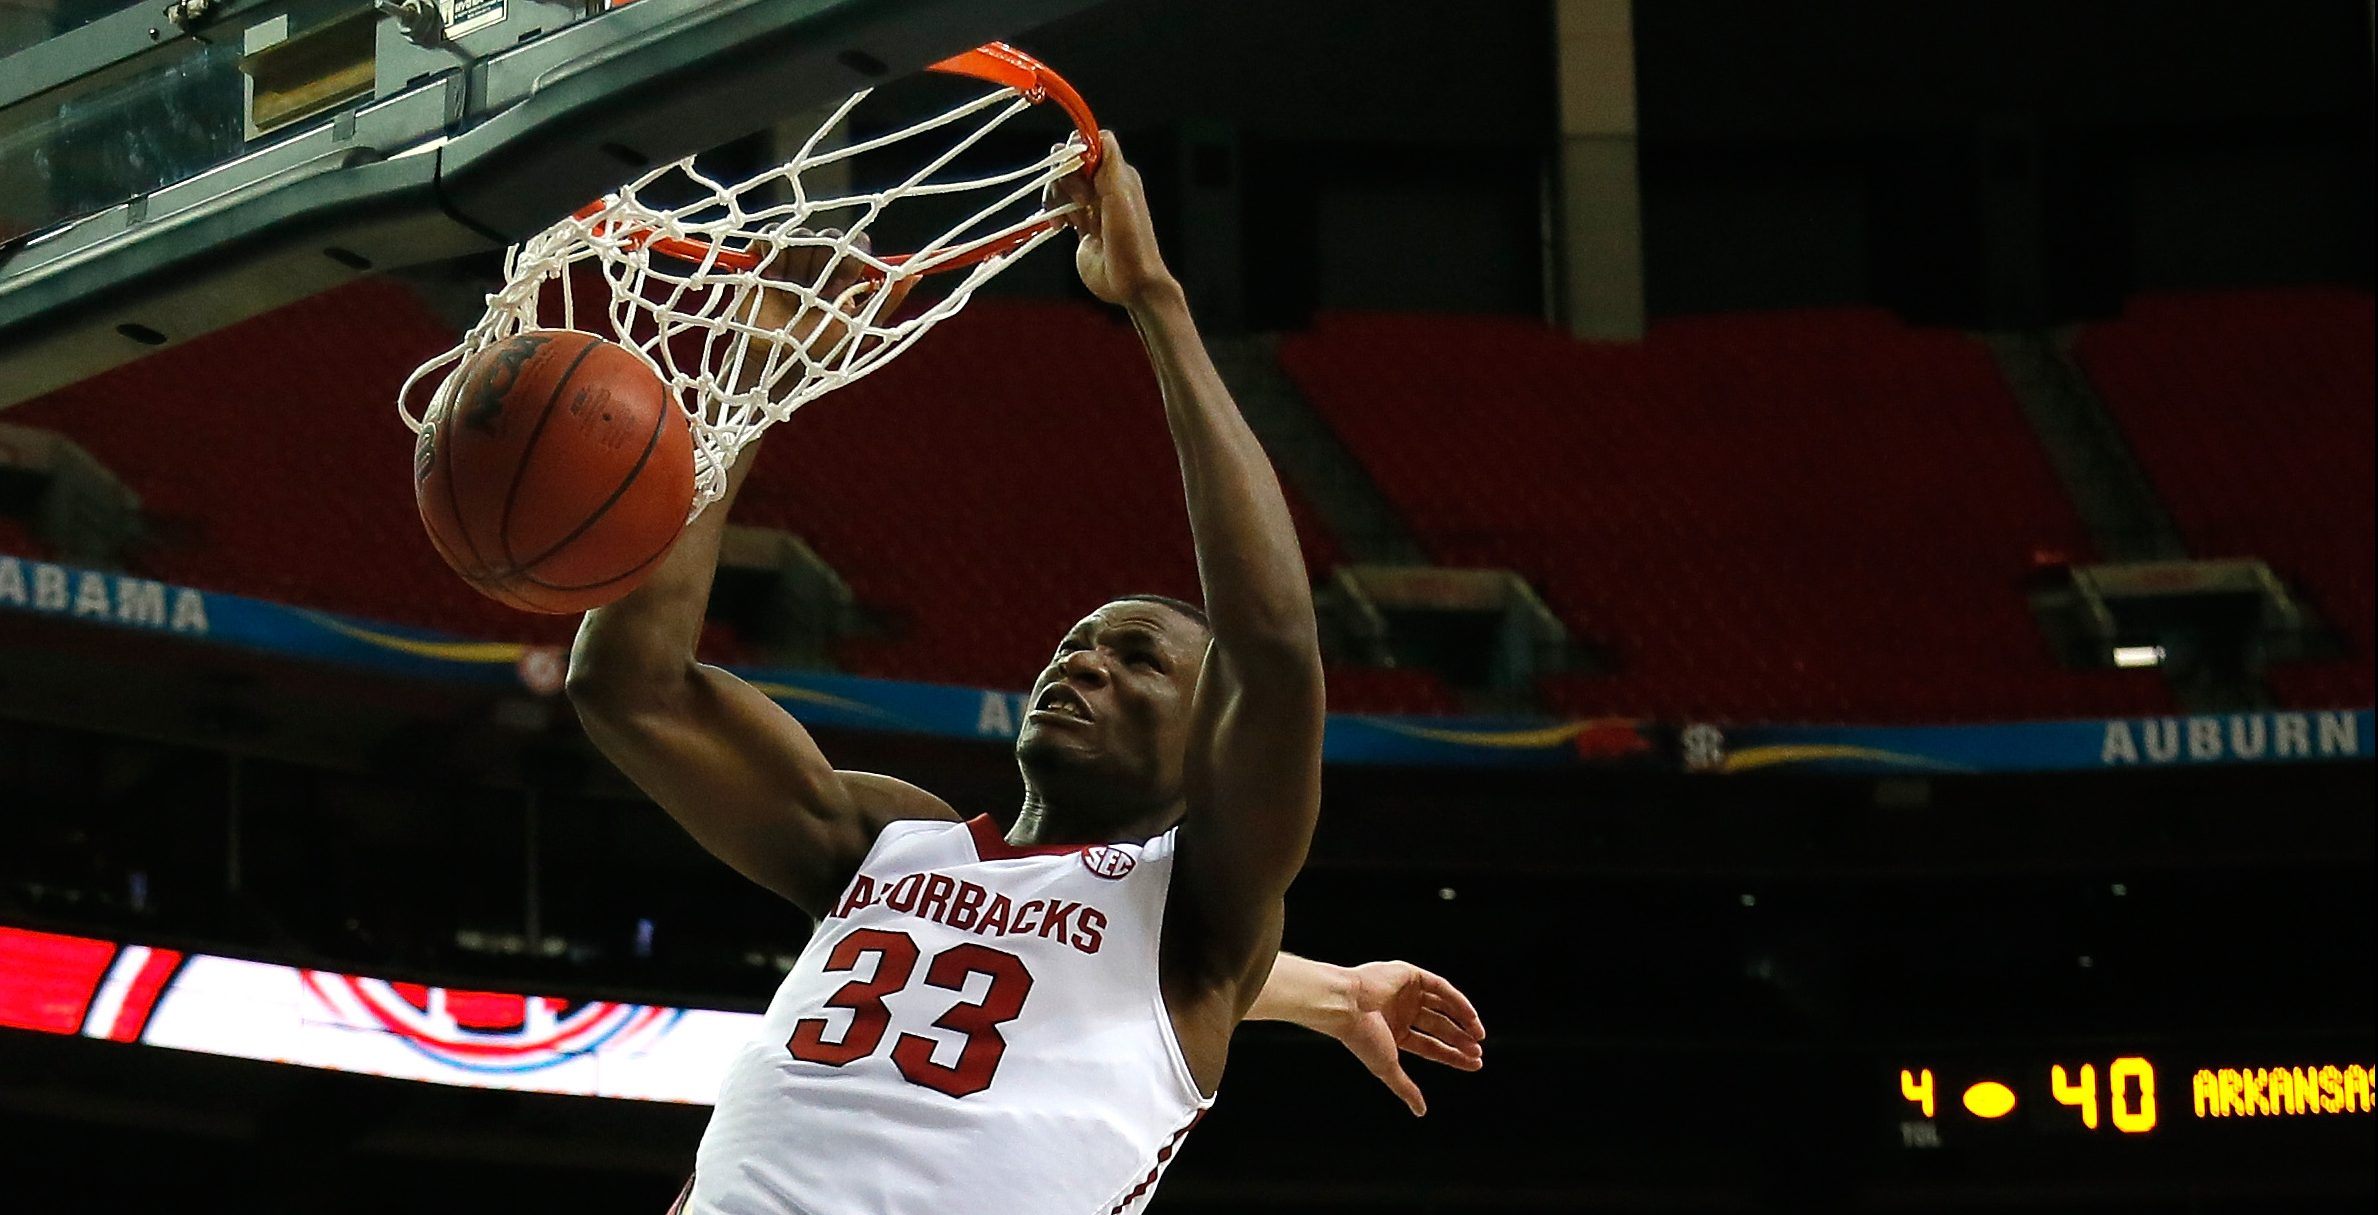 ATLANTA, GA - MARCH 13: Moses Kingsley #33 of the Arkansas Razorbacks dunks against the South Carolina Gamecocks during the second round of the SEC Men's Basketball Tournament at Georgia Dome on March 13, 2014 in Atlanta, Georgia. (Photo by Kevin C. Cox/Getty Images)